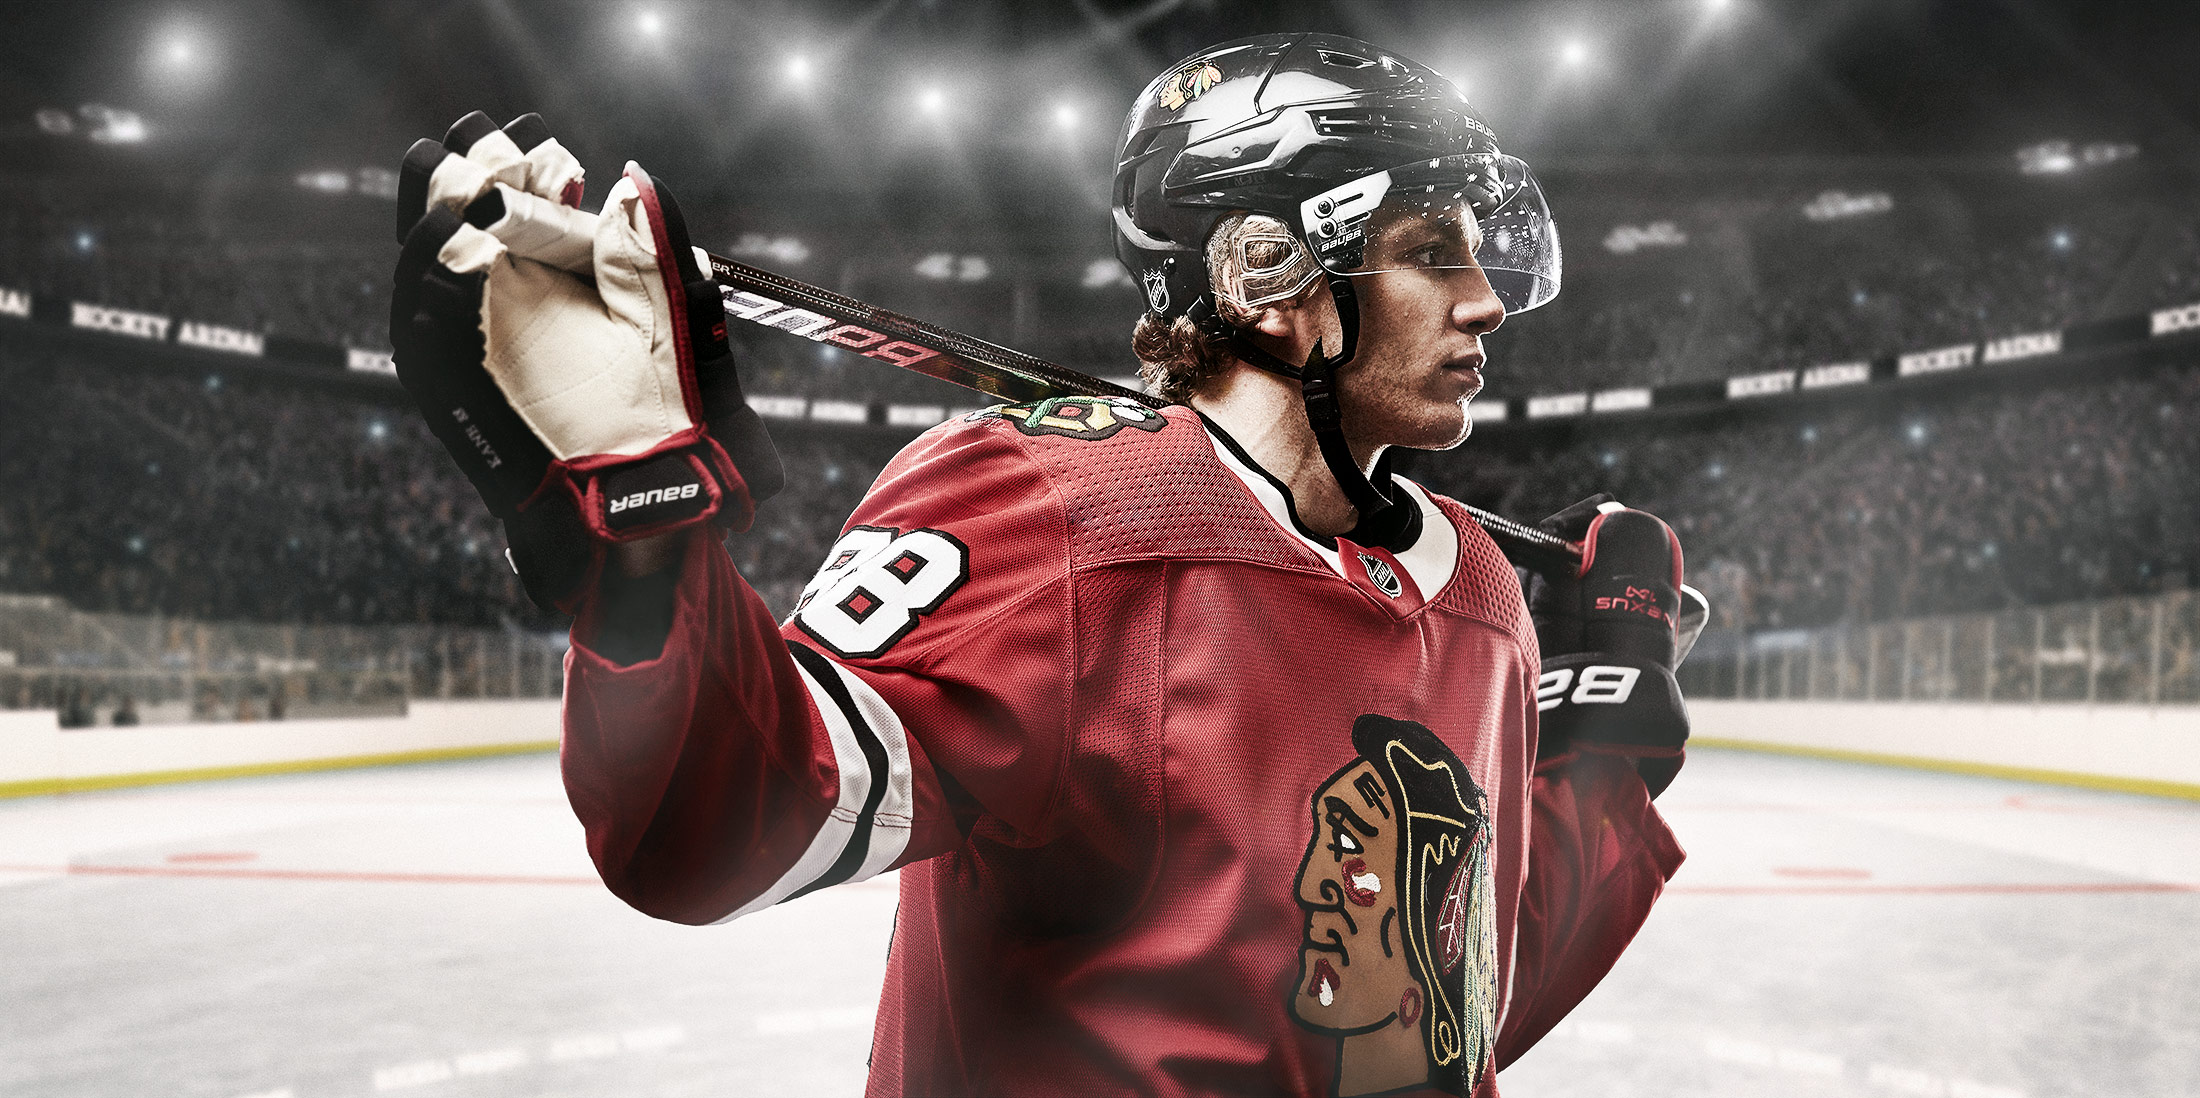 PATRICK KANE - NHL - CHICAGO BLACKHAWKS